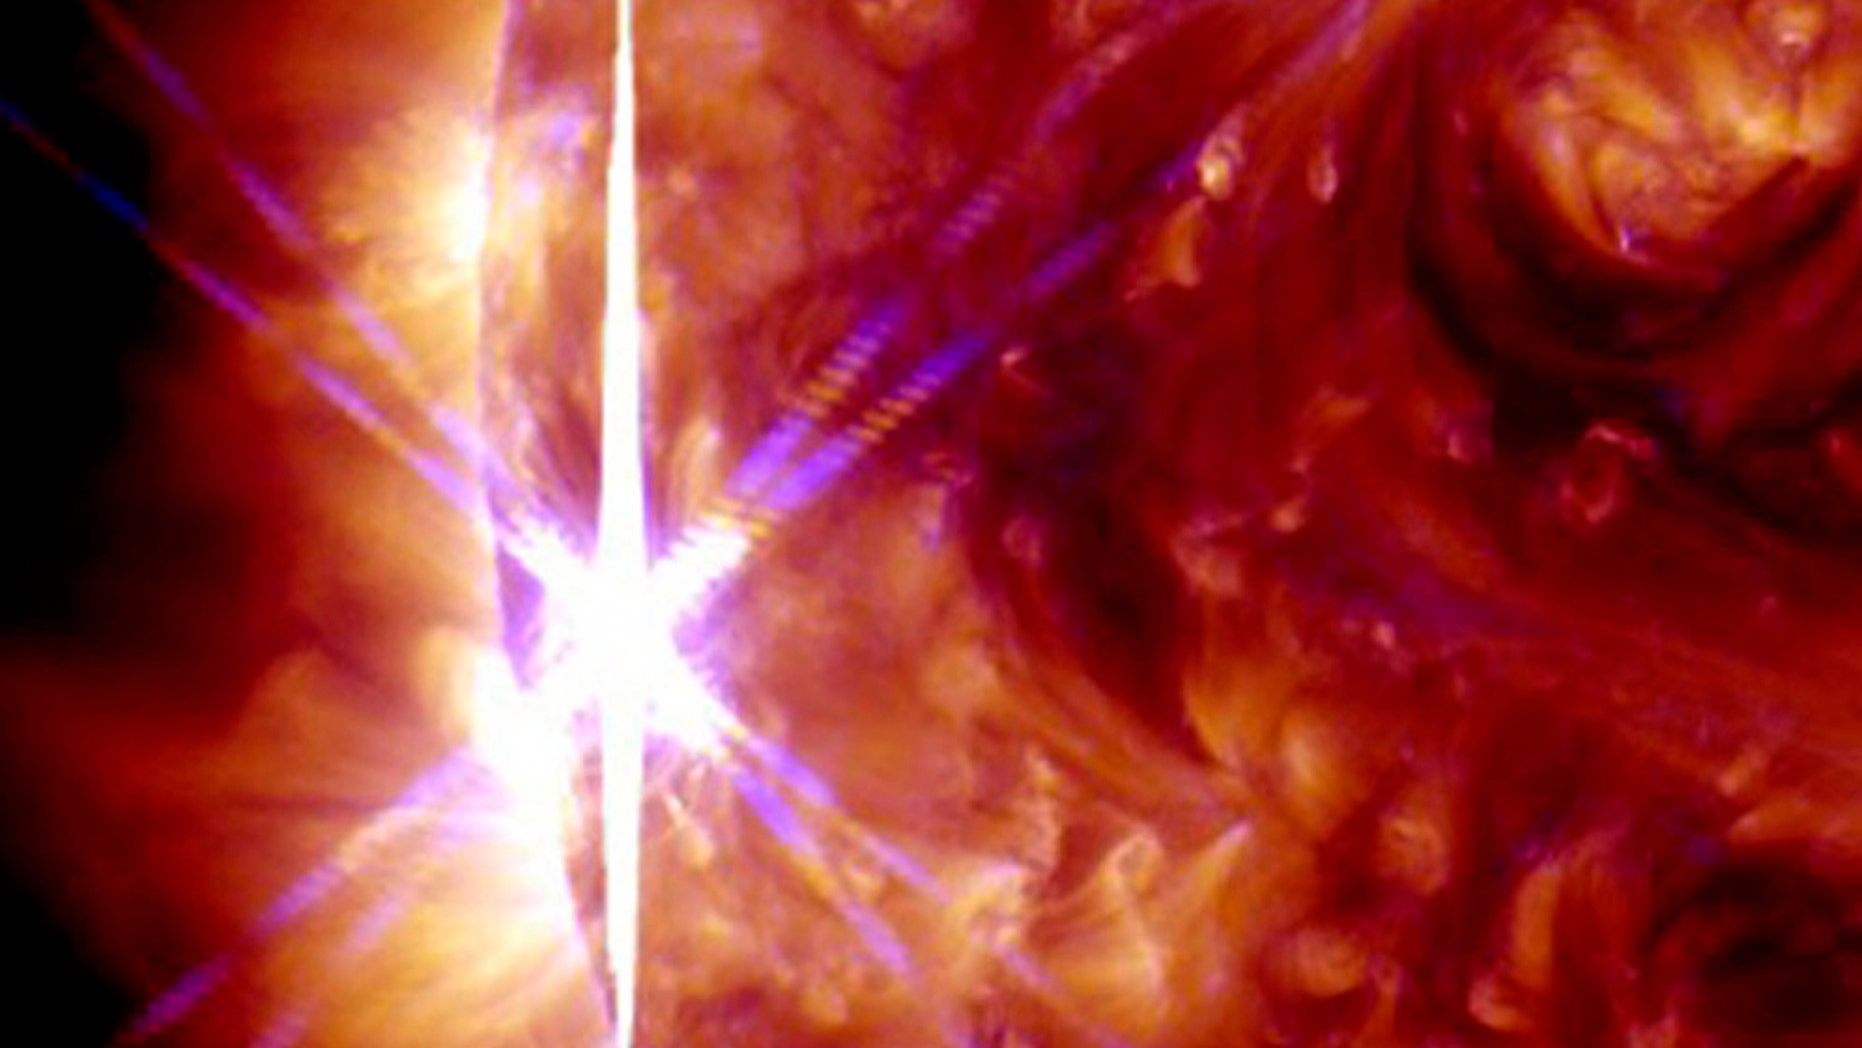 File photo. A solar flare is pictured erupting from the sun October 25, 2013 in this NASA handout photograph from its Solar Dynamics Observatory.